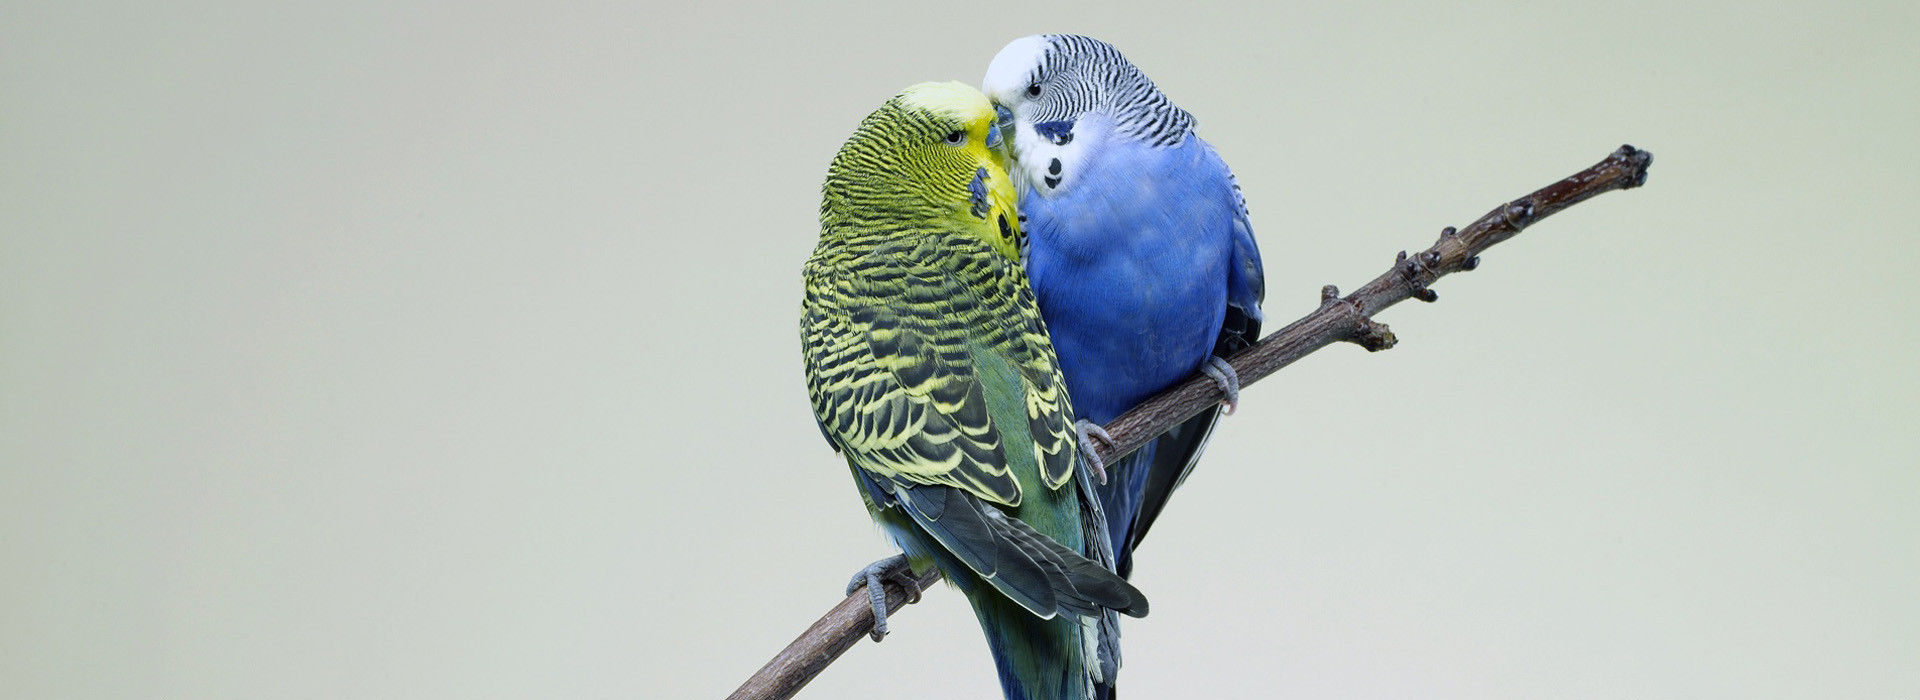 budgie-parrots-kissing-budgies-bird-branch